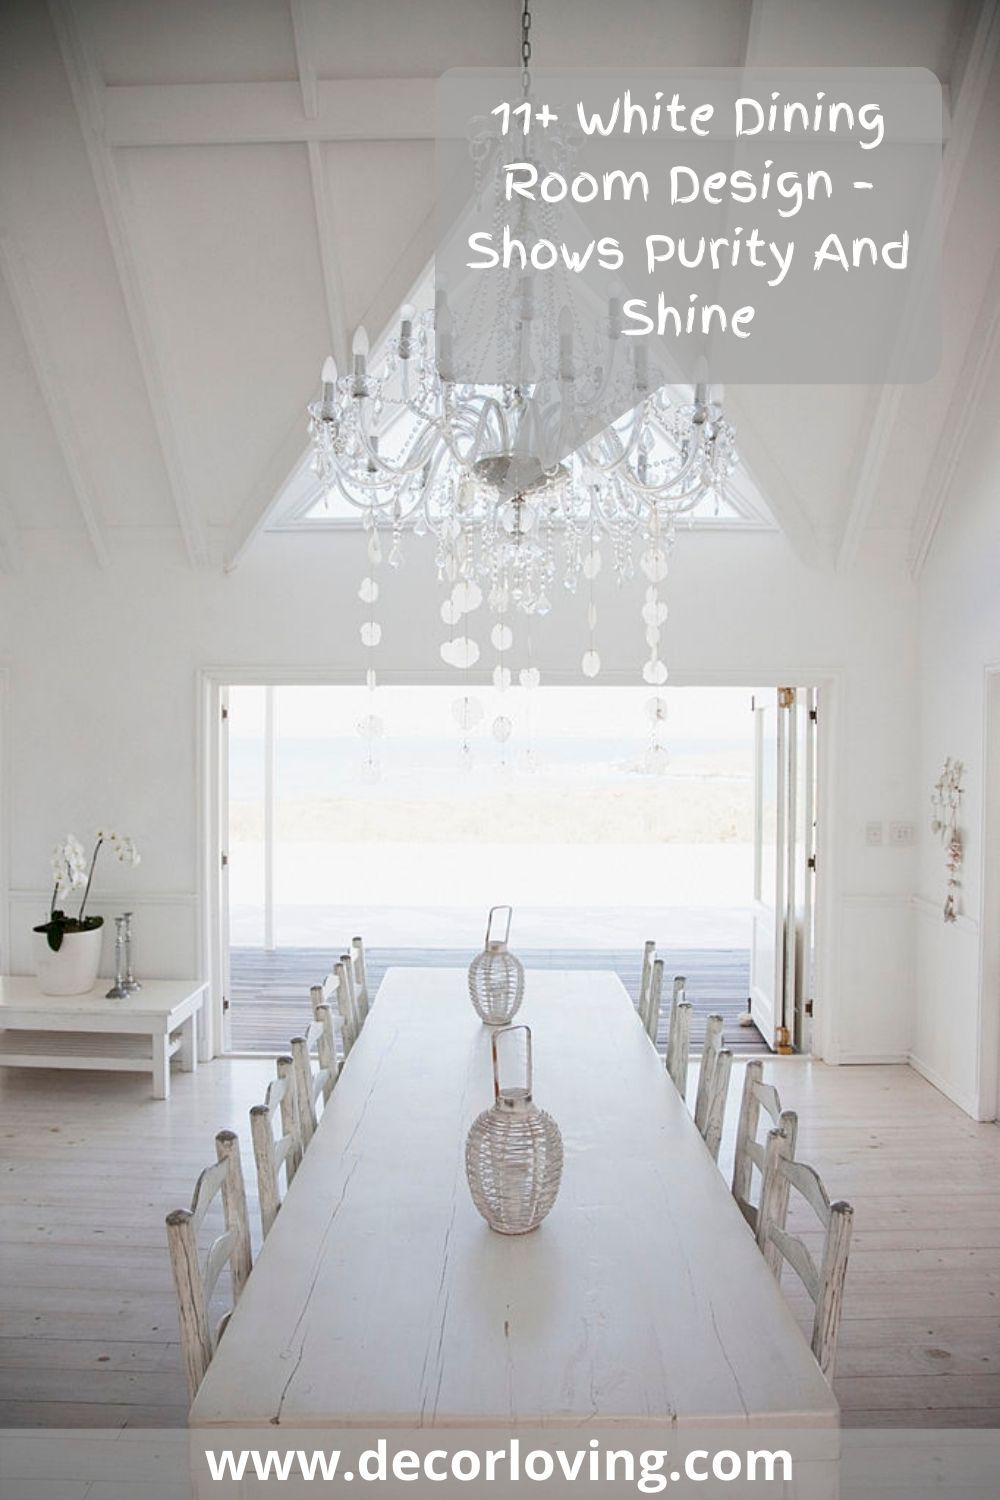 Consider the following ideas on furniture and decor in the white dining room ideas. #whitediningroom #diningroomdesign #diningroomideas #diningroomdecor #moderndiningroom #luxurydiningroom